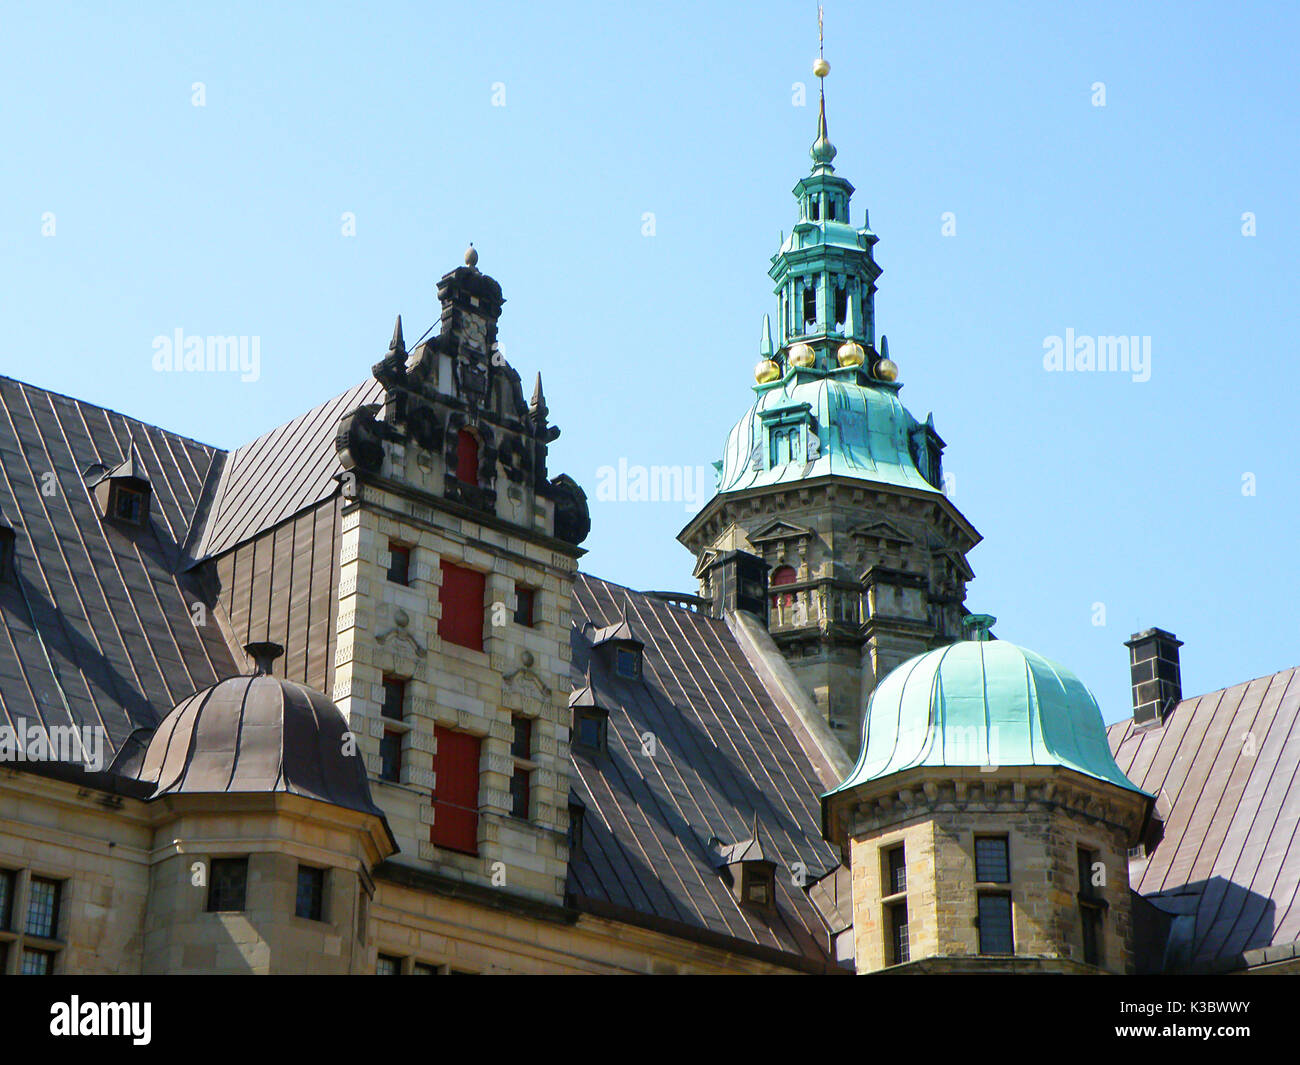 The impressive decorated roof and facade of Kronborg in Helsingor, Denmark - Stock Image